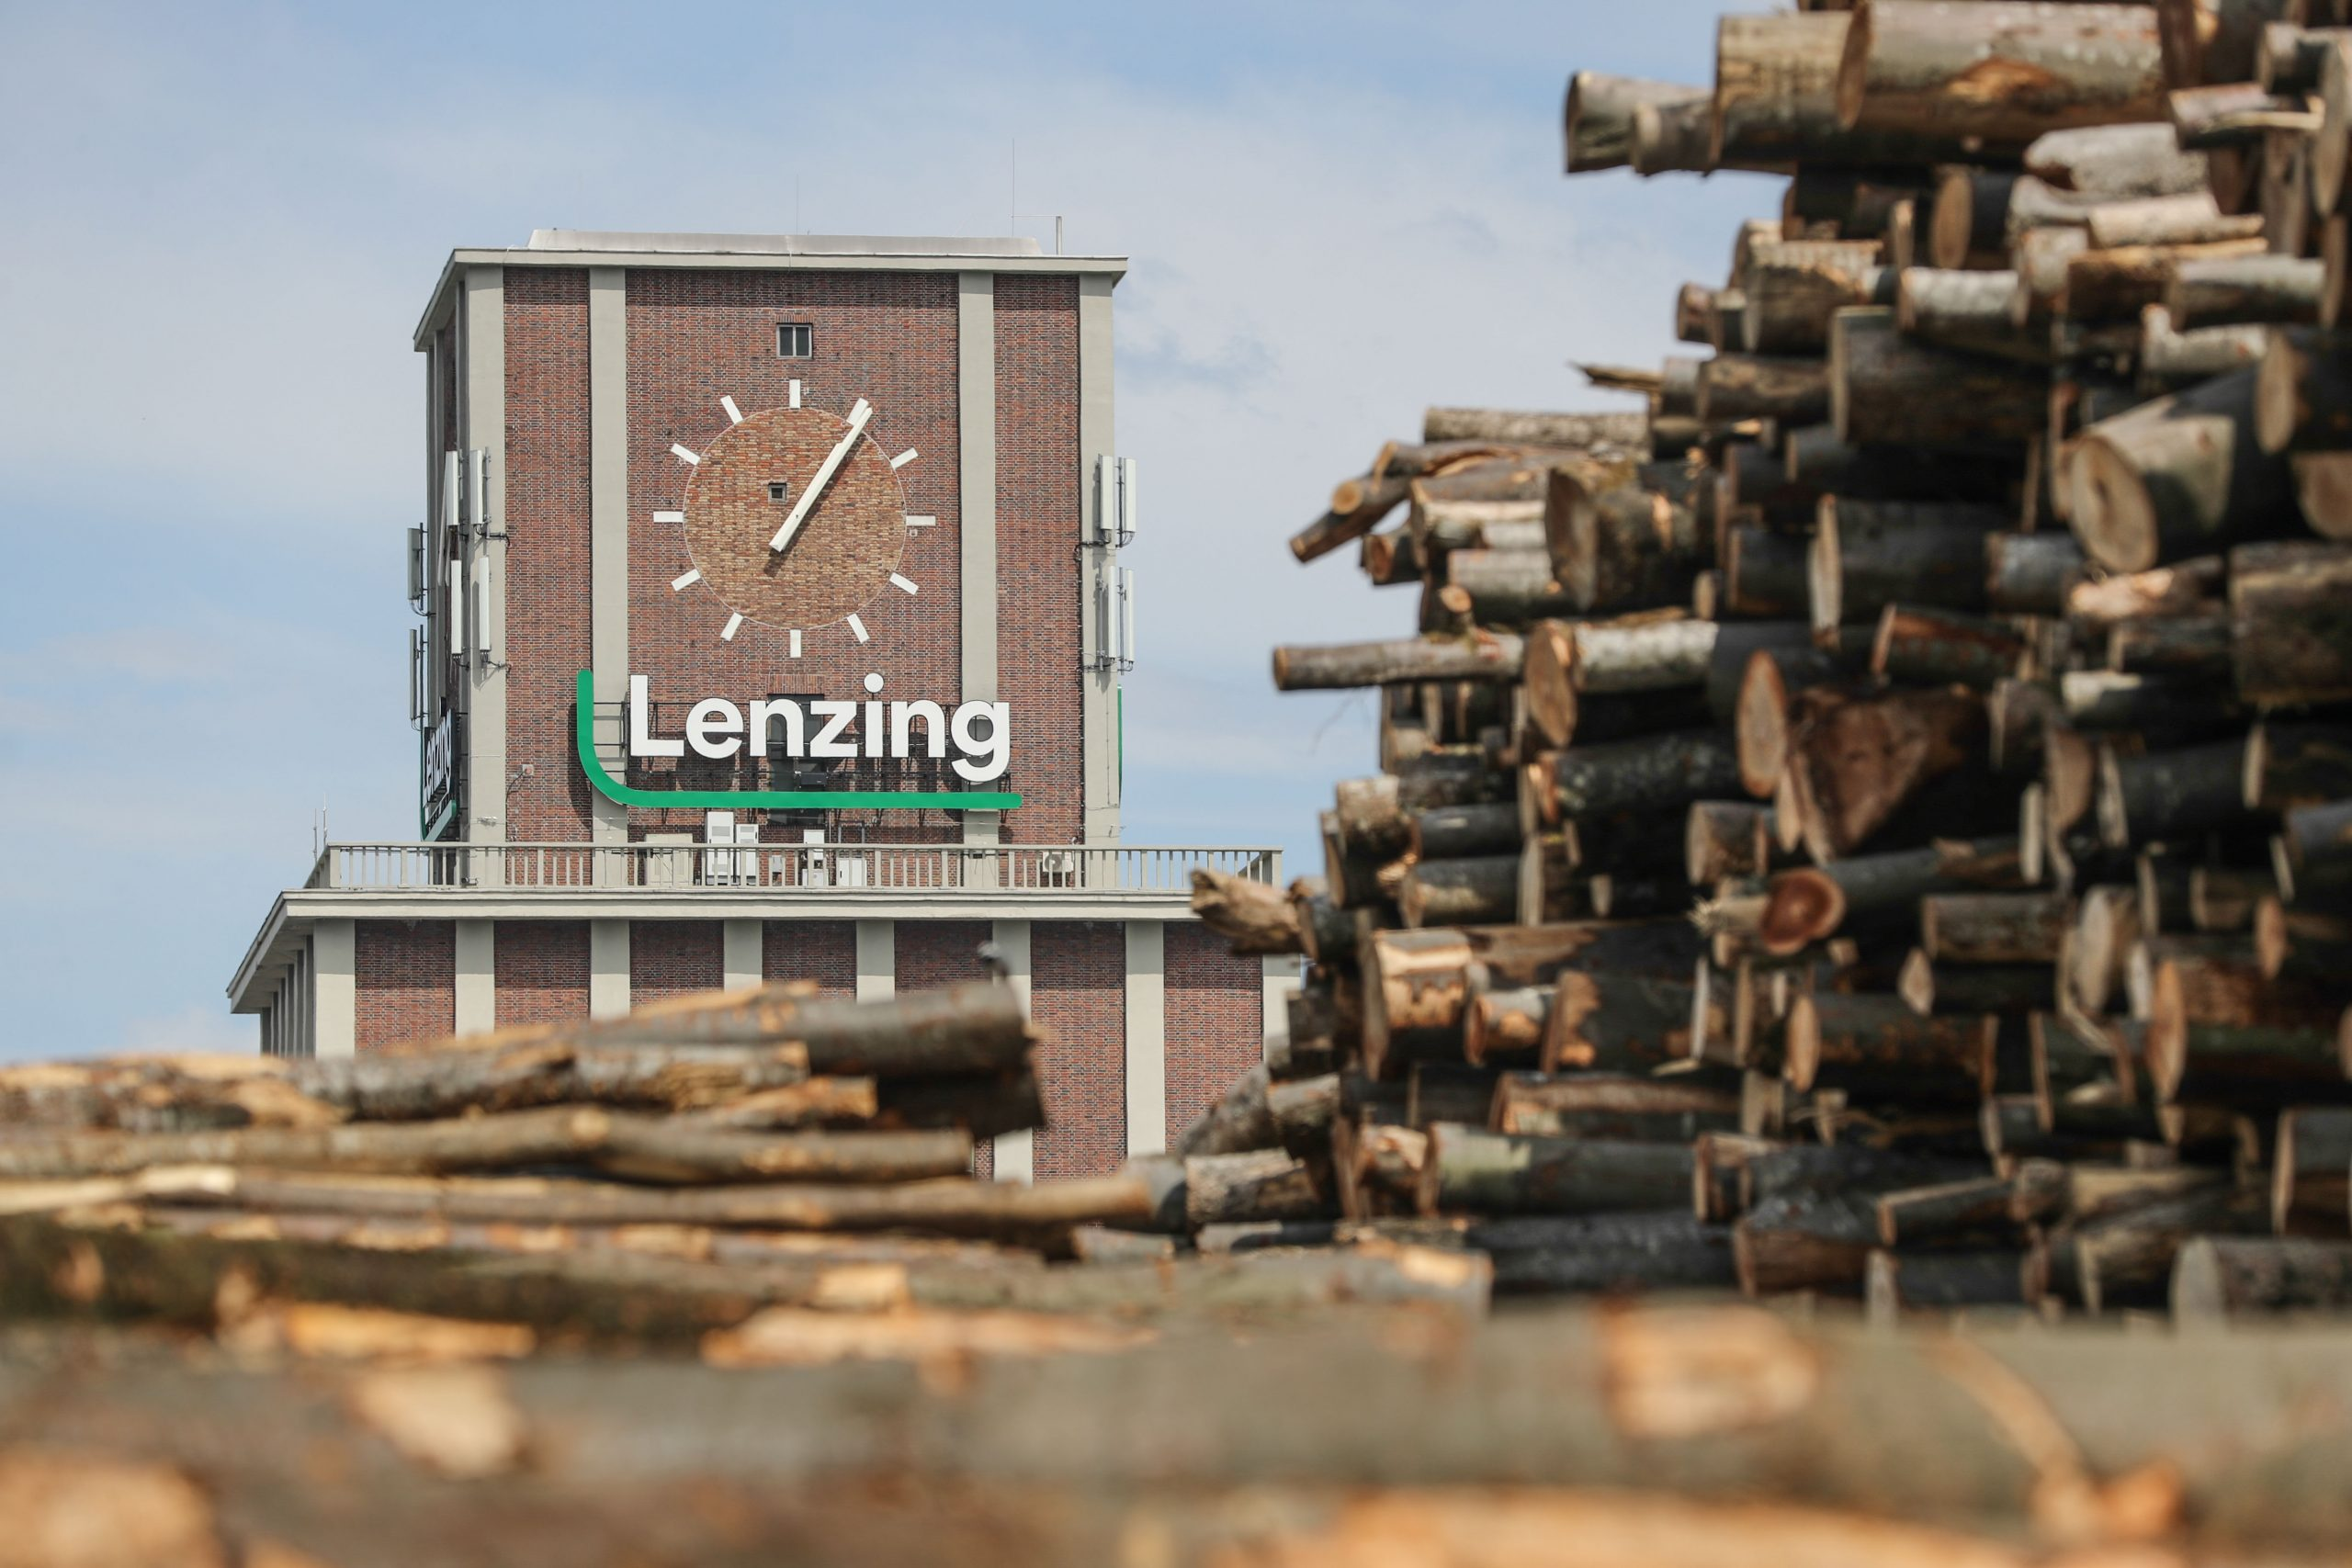 CDP's 'A List': Lenzing is the only first-time discloser recognized with prestigious double 'A' score for global climate and forests stewardship.